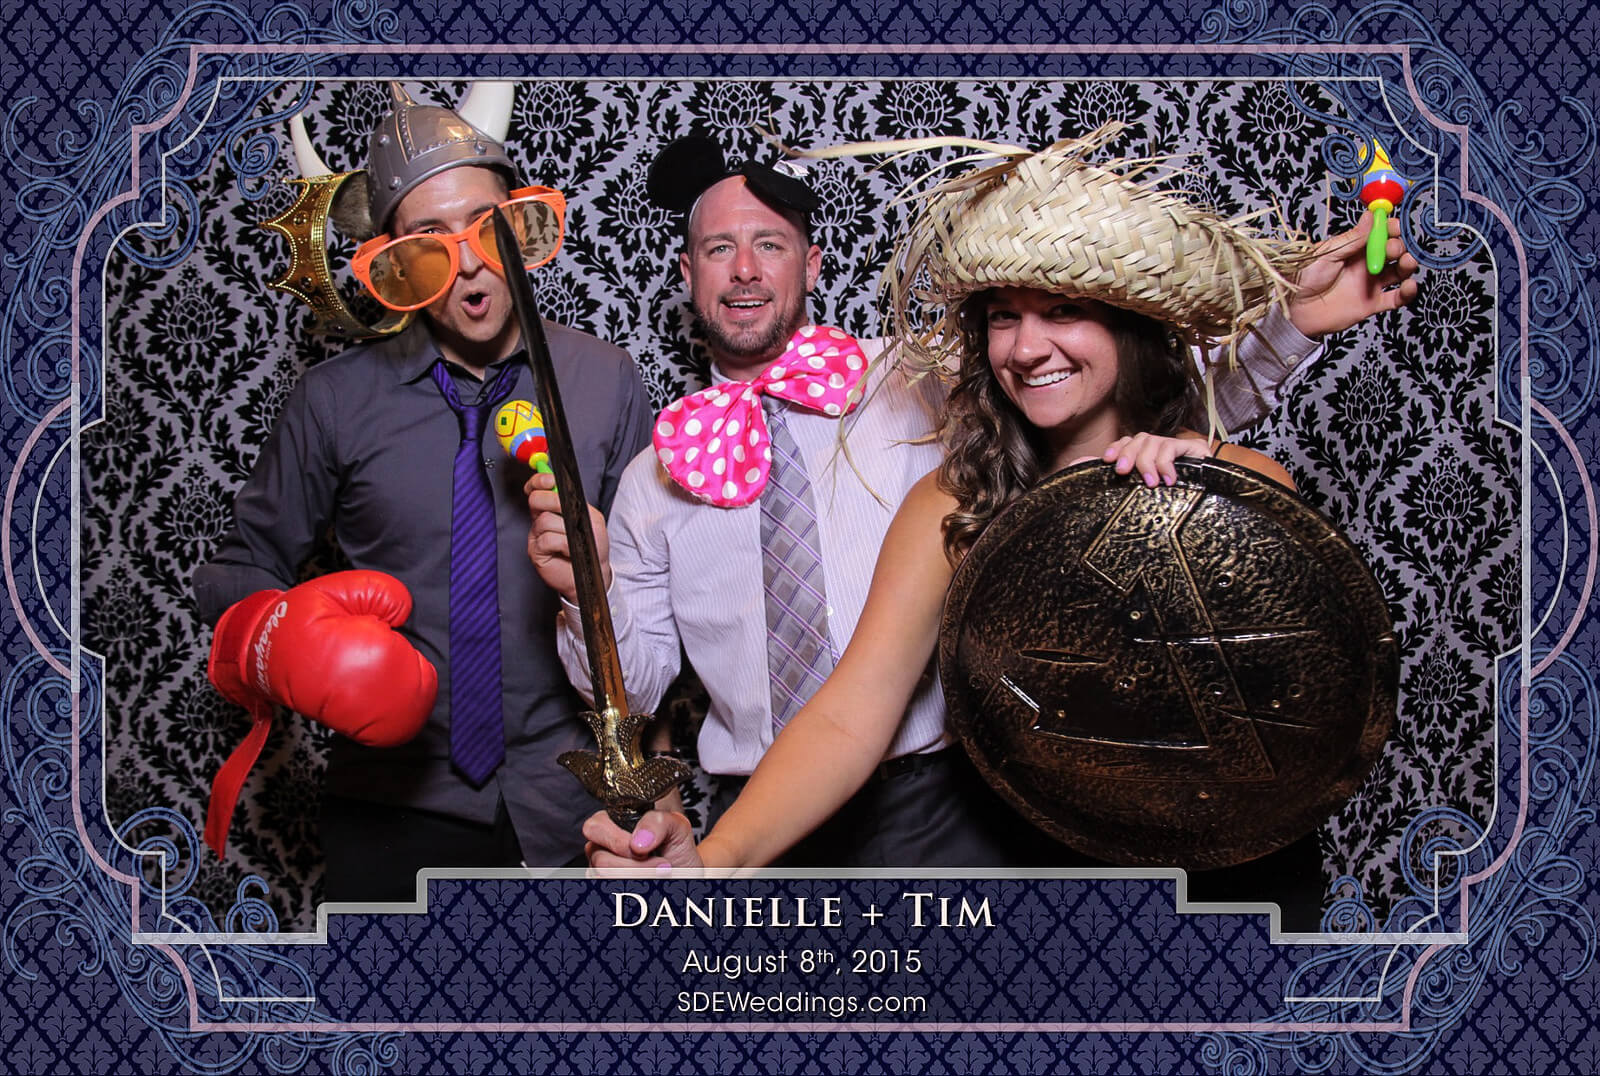 Toronto Old Mill Inn Wedding Photo Booth Rental 12